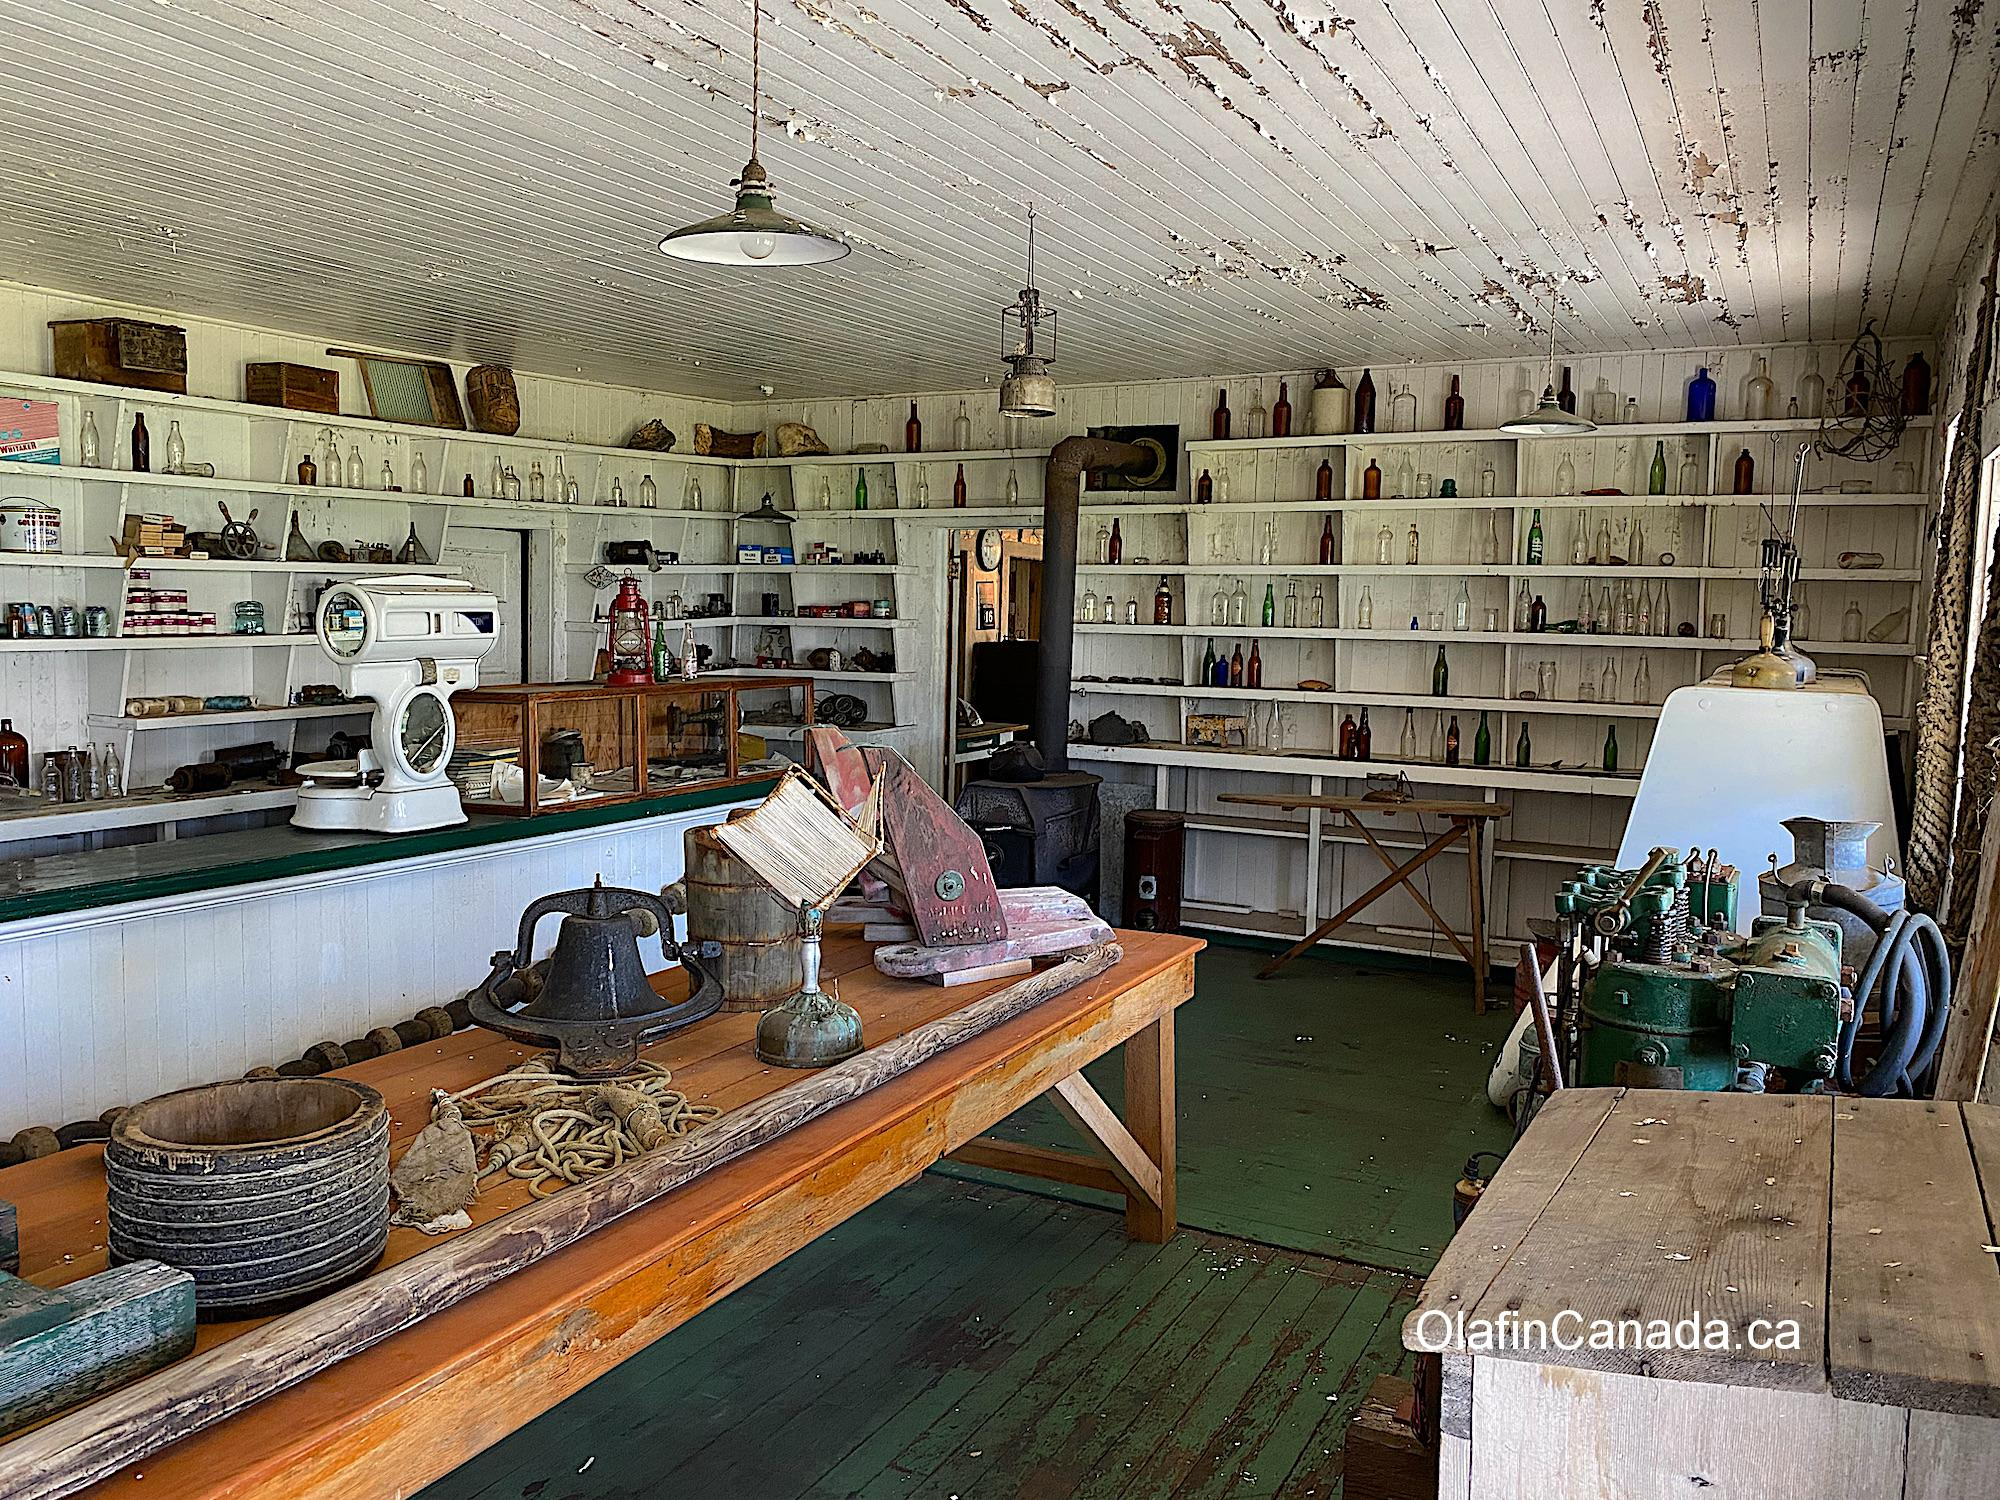 Items on the shelves in the shop at the Tallheo Cannery in Bella Coola #olafincanada #britishcolumbia #discoverbc #abandonedbc #tallheocannery #bellacoola